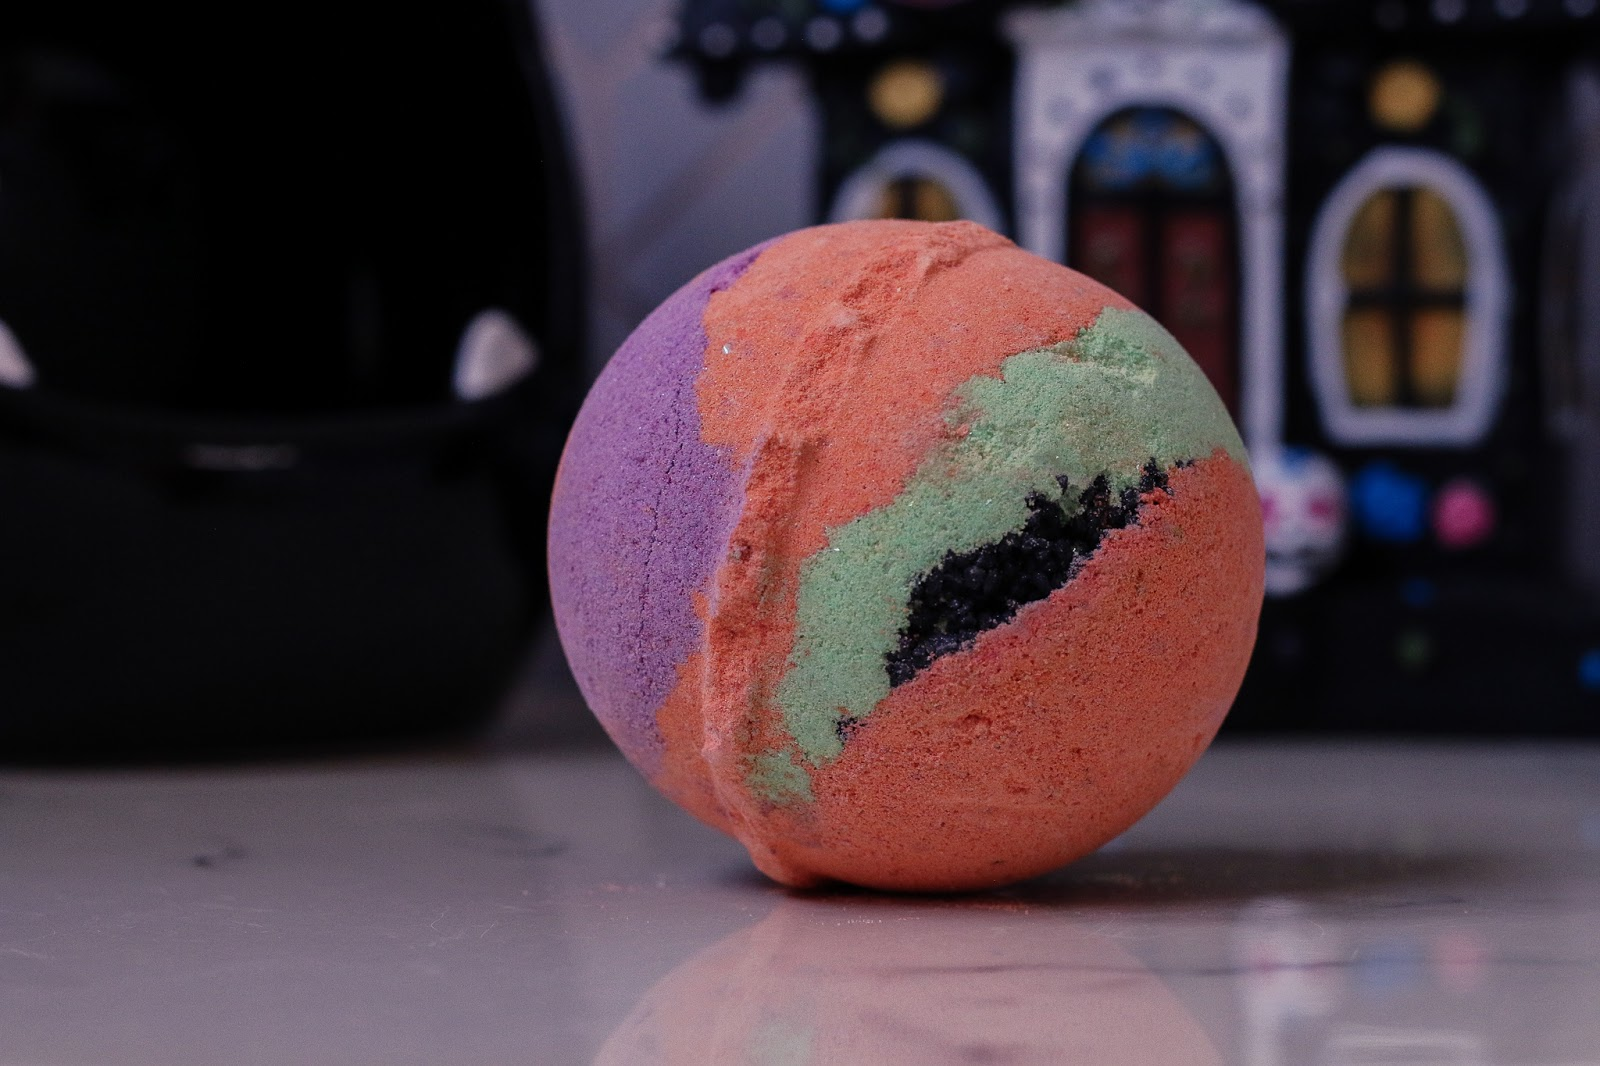 extreme close up photo of the Mercury Retrograde Bath bomb from lush. A round orange bath bomb with green, purple and black coarse sea salt through it. Bath bomb sitting on white marble bed side table with a Haunted house Halloween decoration in the background.